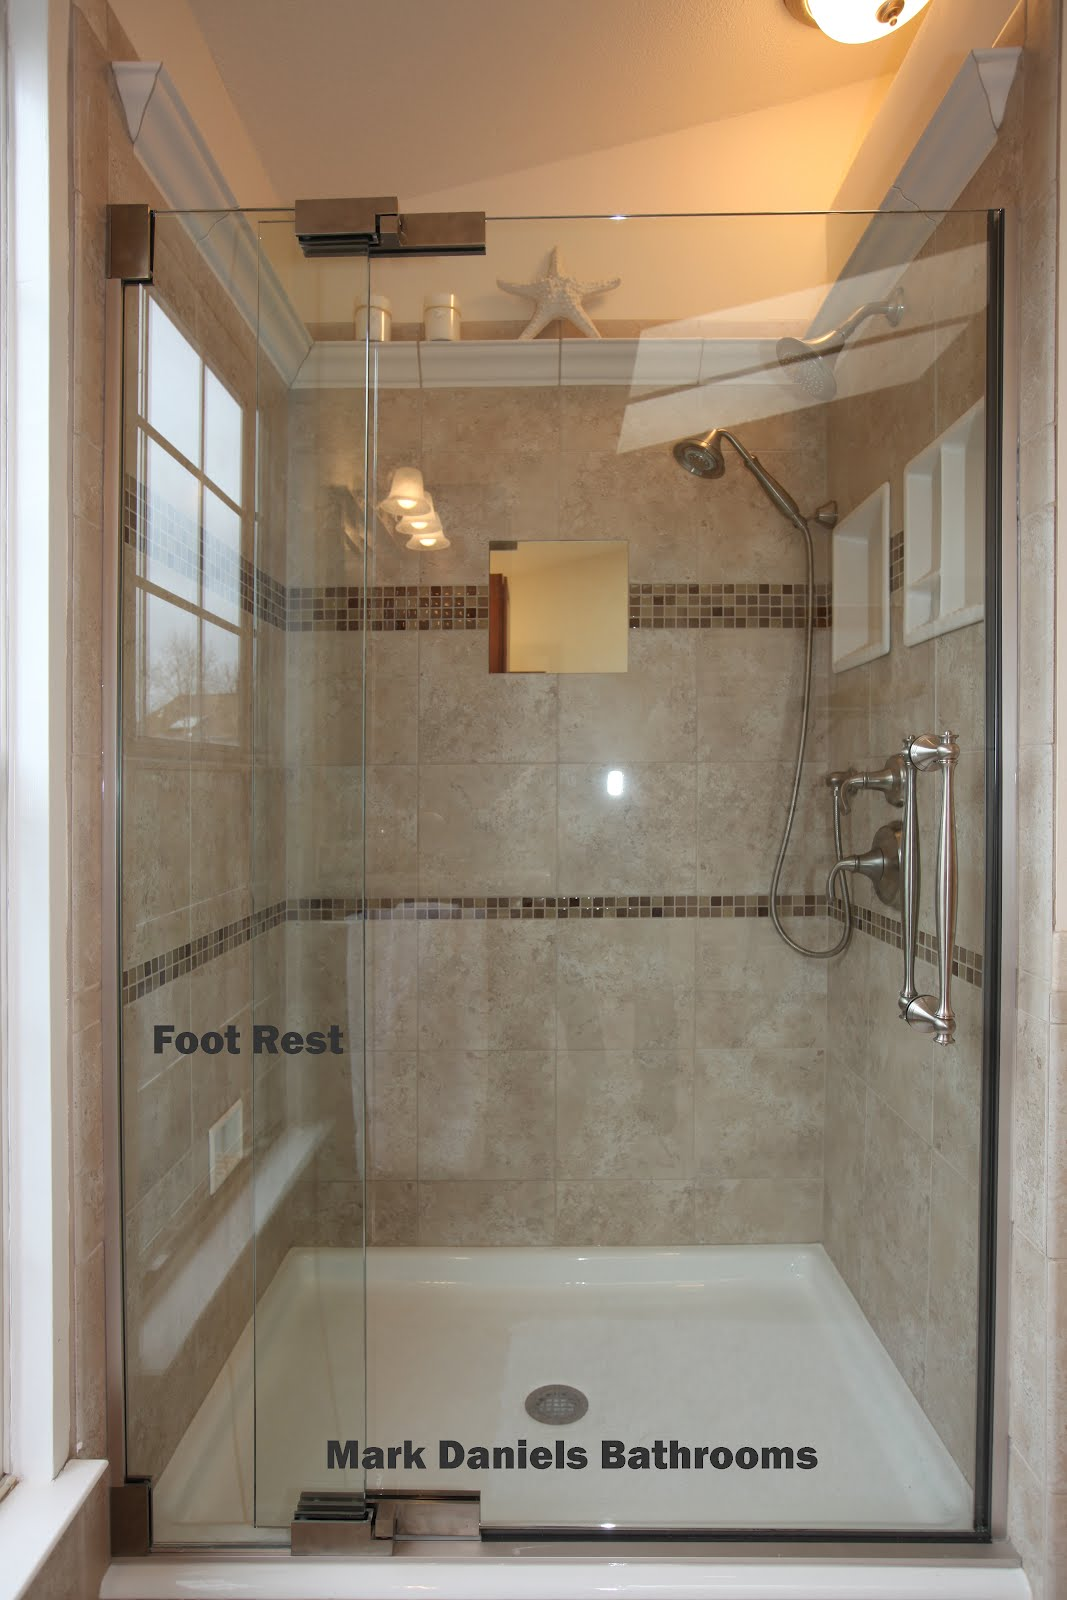 Bathroom remodeling design ideas tile shower niches for Bathroom tile designs 2012